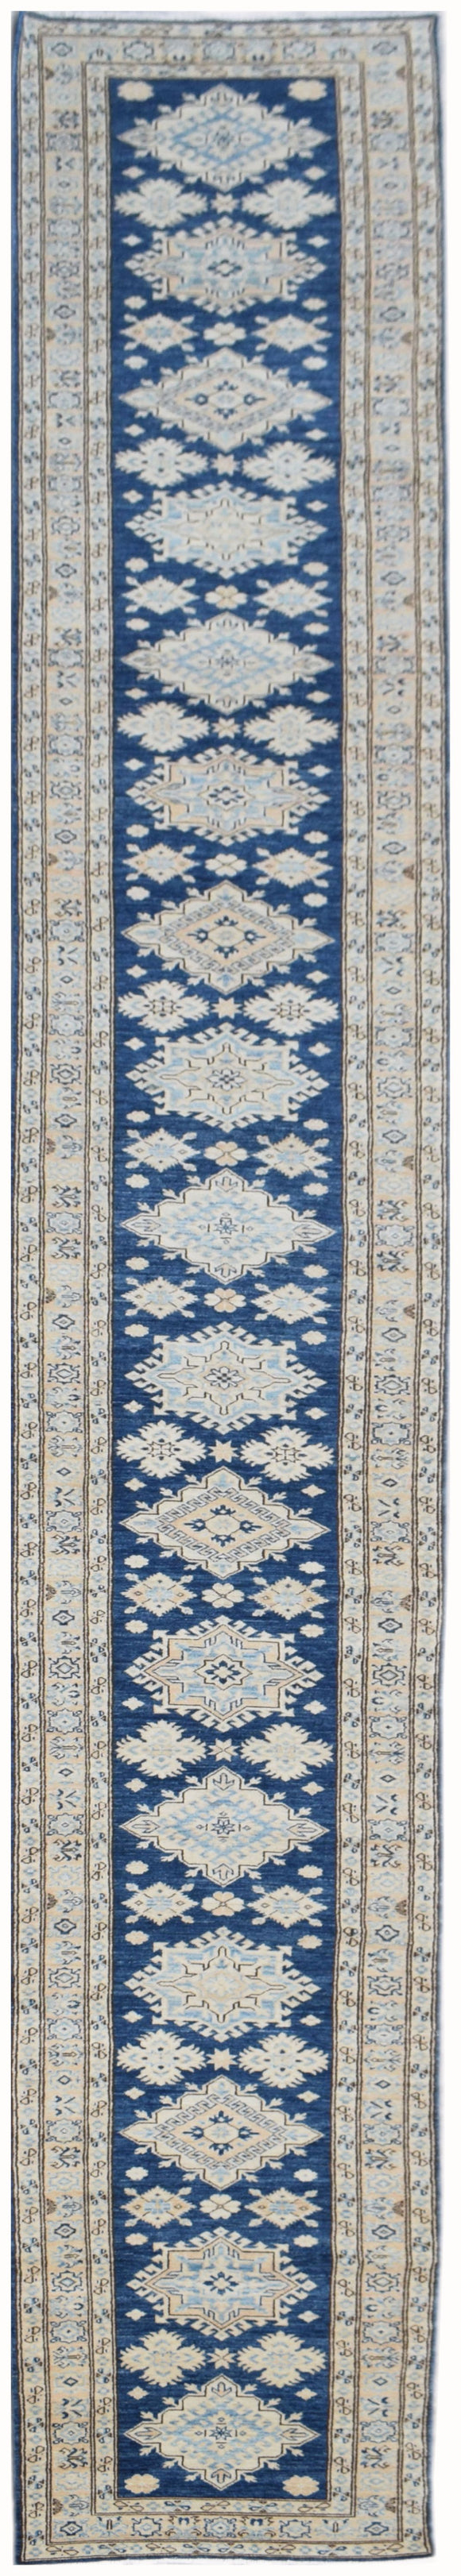 Handmade Super Sultan Collection Hallway Runner | 690 x 79 cm | 22'8